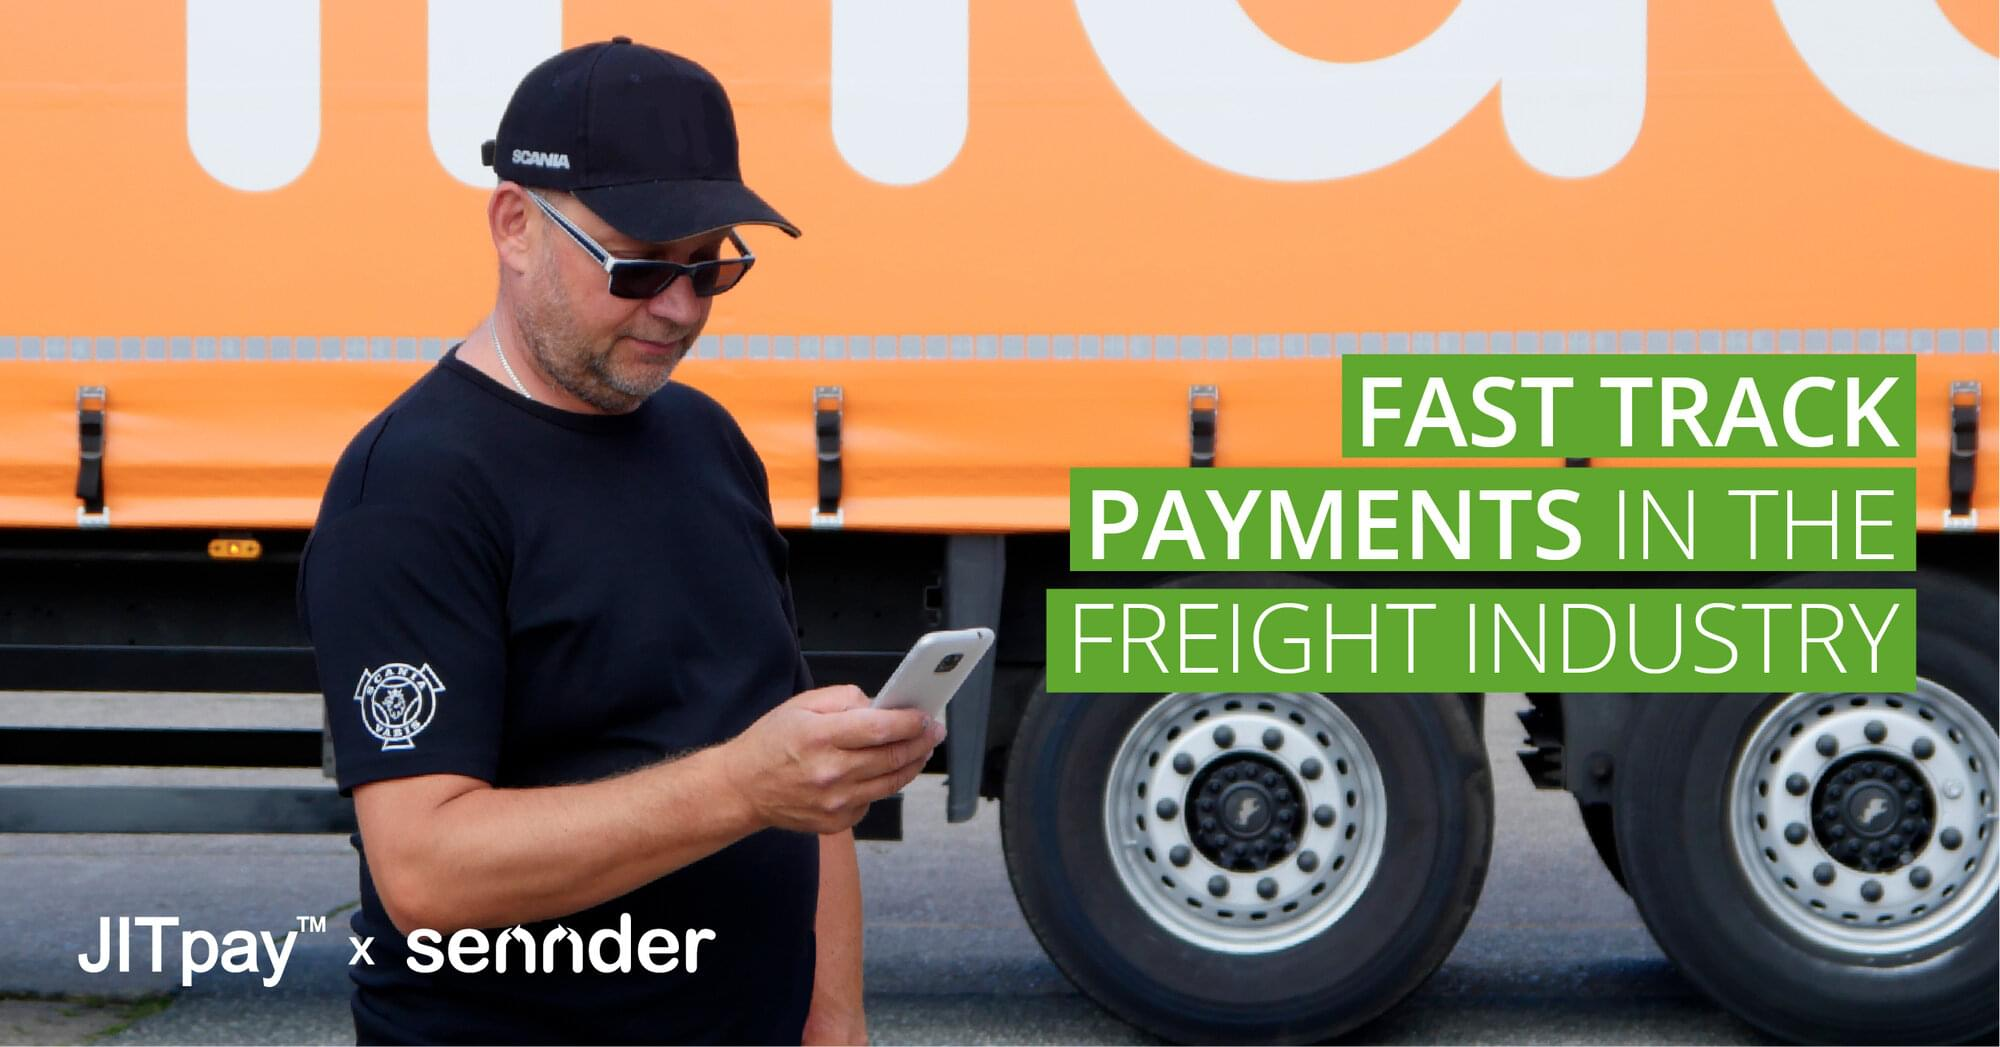 sennder and JITpay™ revolutionize the logistics sector with instant payment for transport companies for all of their customers